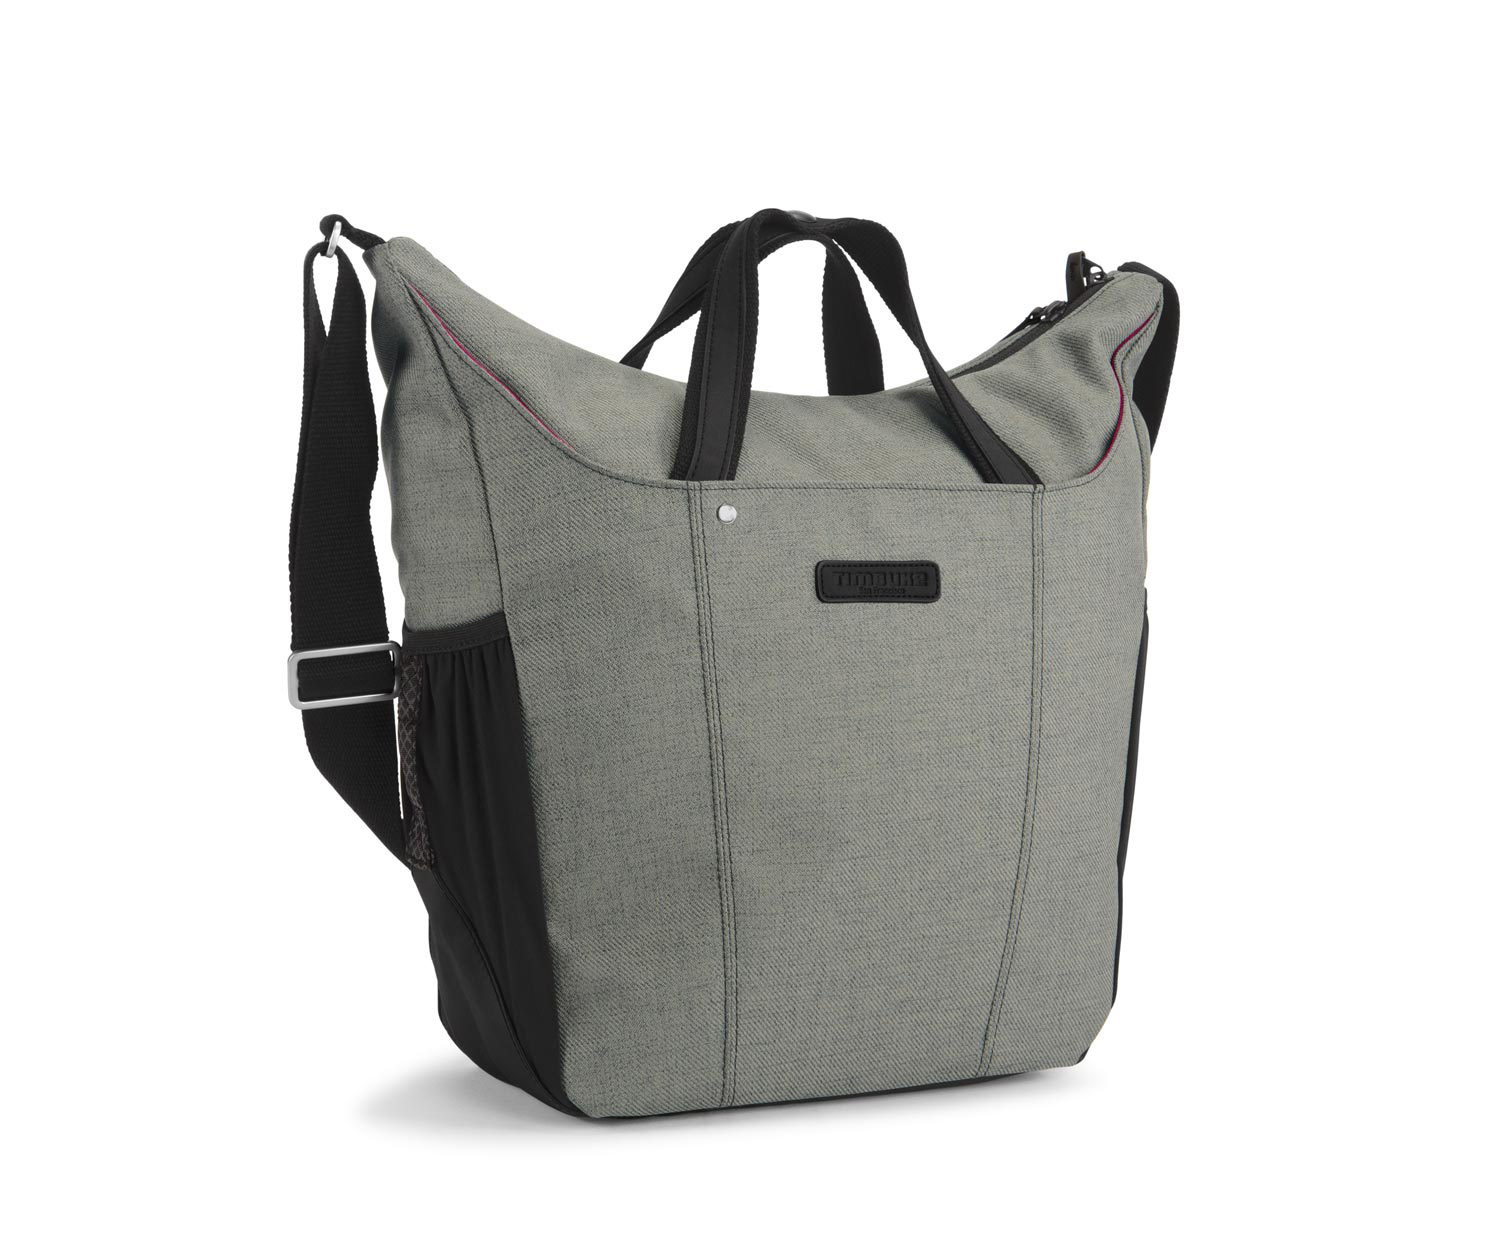 Timbuk2 Single Pannier Moraga Carbon Full-Cycle